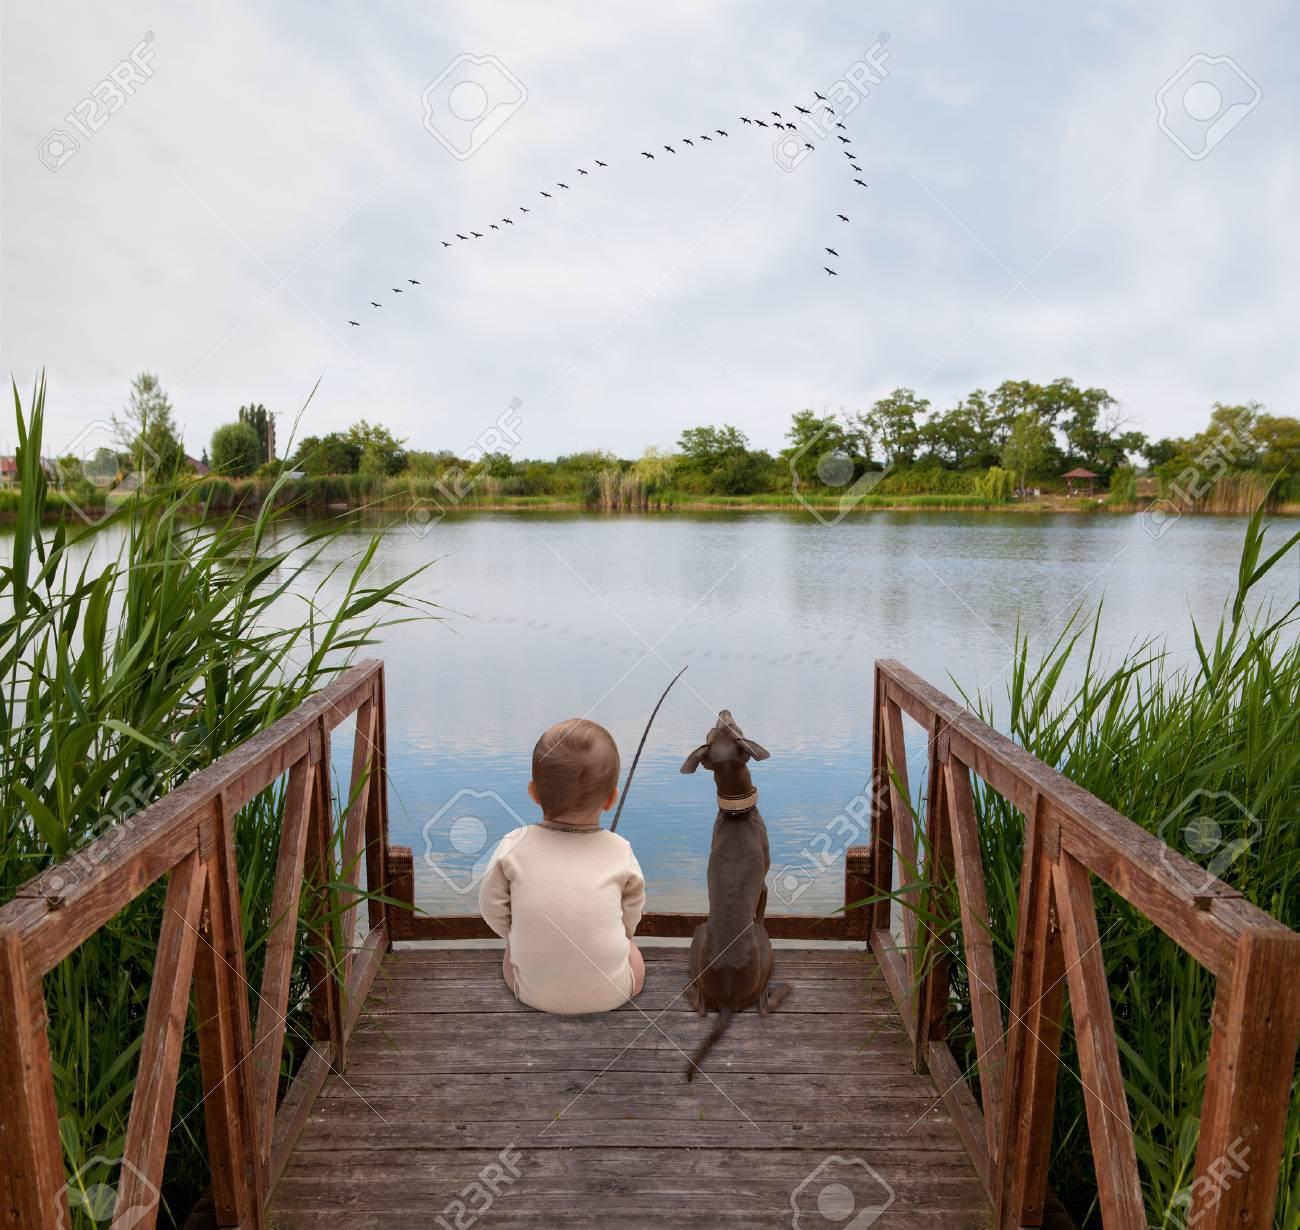 boy and his dog fish on the shore of Lake Stock Photo - 38924536